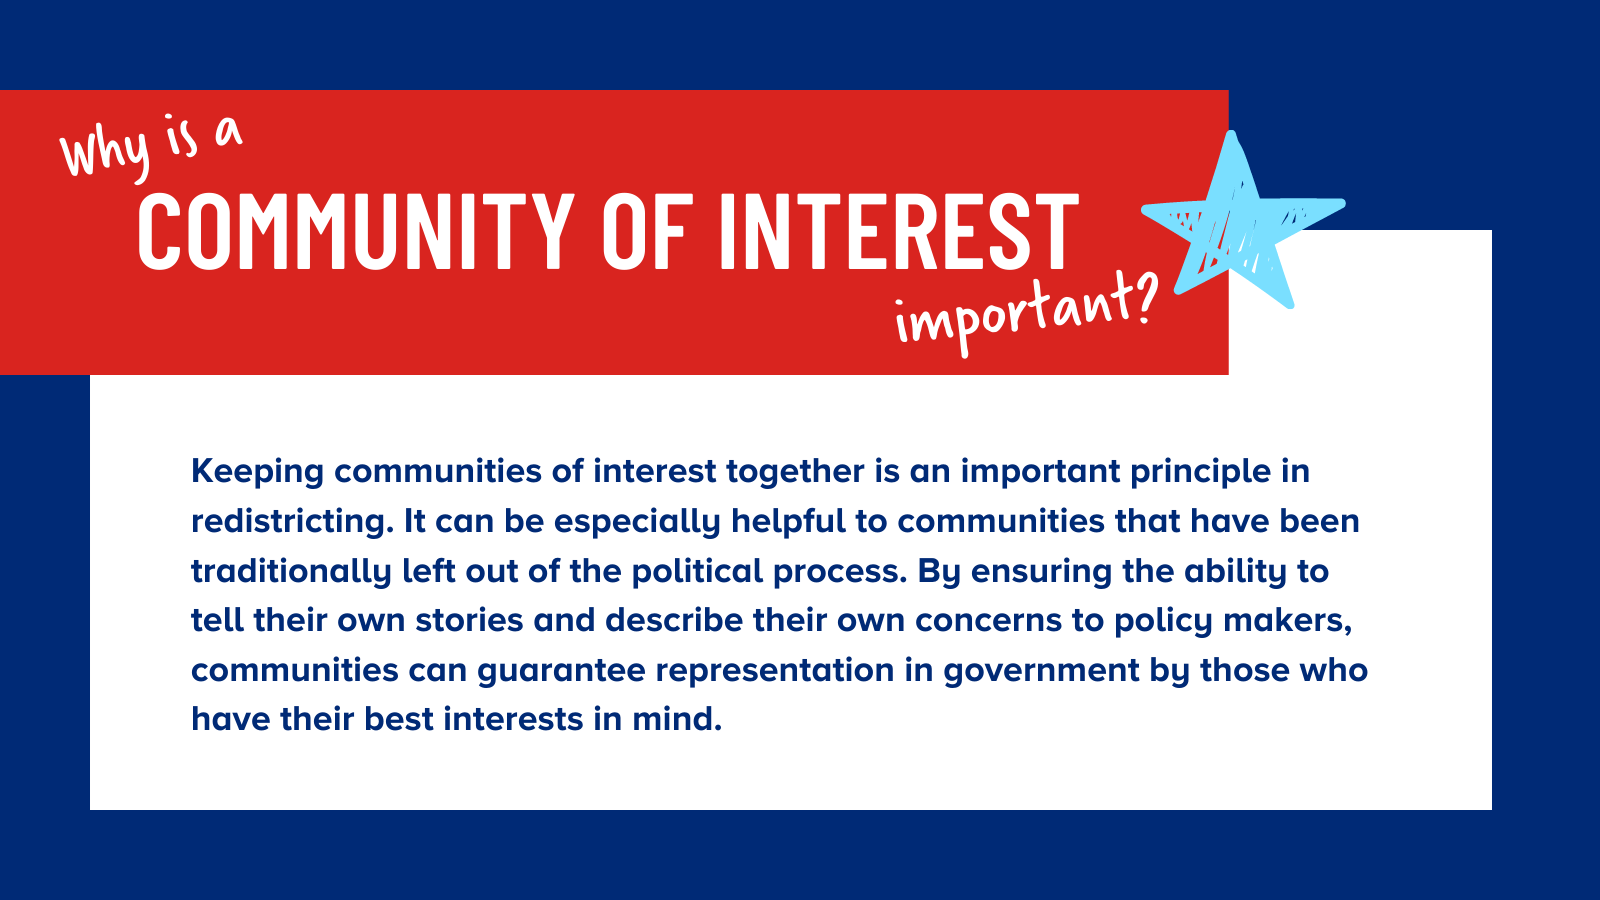 Keeping communities of interest together is an important principle in redistricting. It can be especially helpful to communities that have been traditionally left out of the political process. By ensuring the ability to tell their own stories and describe their own concerns to policy makers, communities can guarantee representation in government by those who have their best interests in mind.